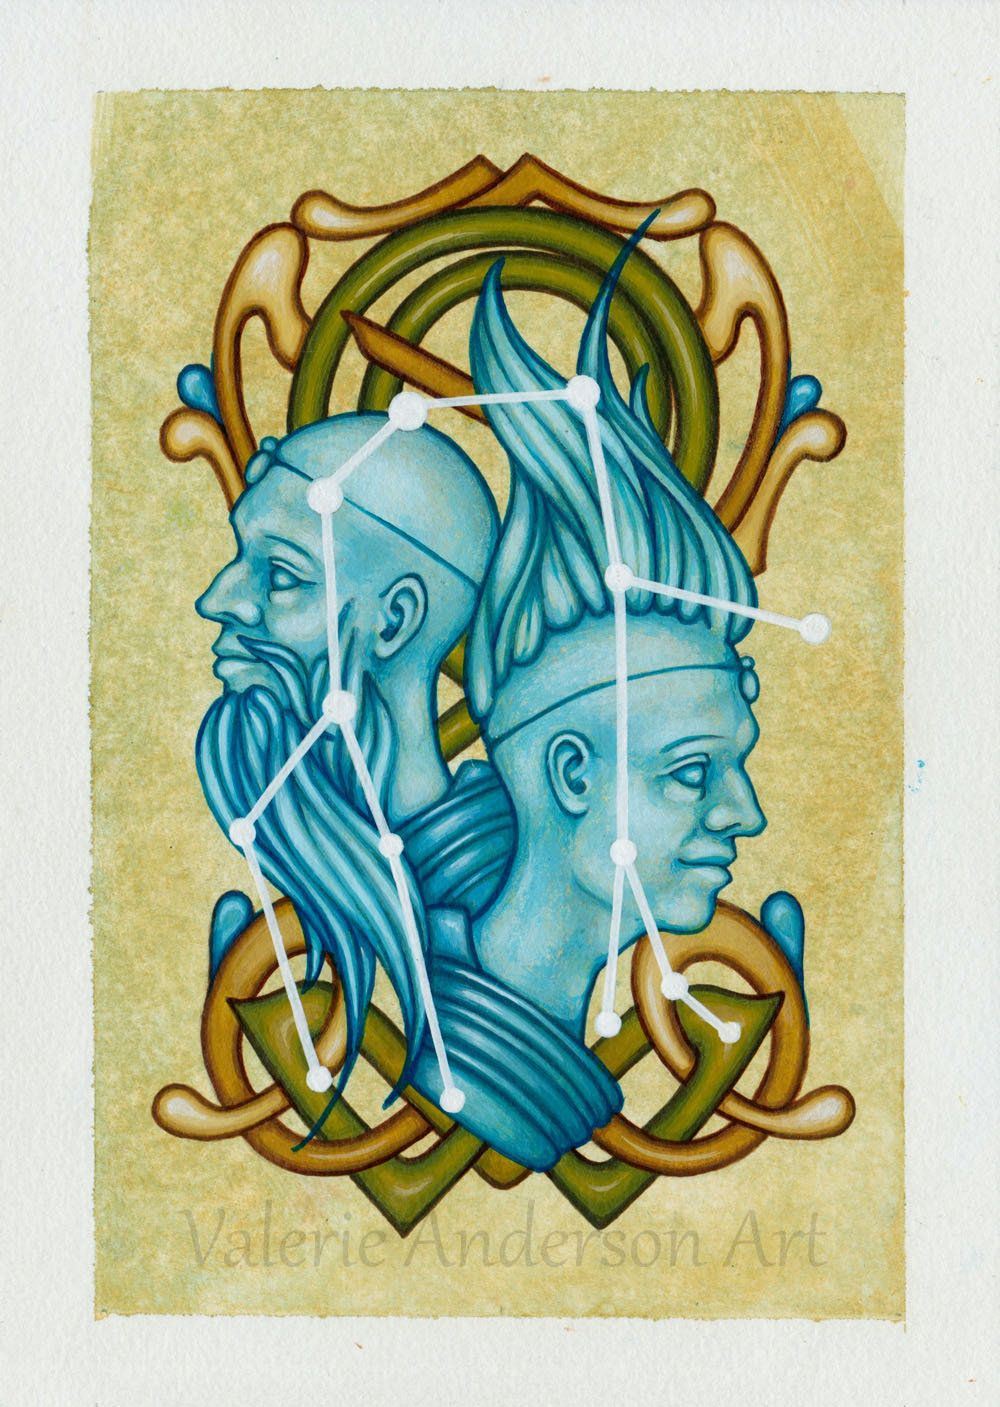 Original Gemini Twins Cosmic Constellation Painting 8 x 10 Mat Included,  blue, Castor Pollux, stars, art nouveau… in 2020 | Zodiac gifts, Original  canvas, Castor and pollux